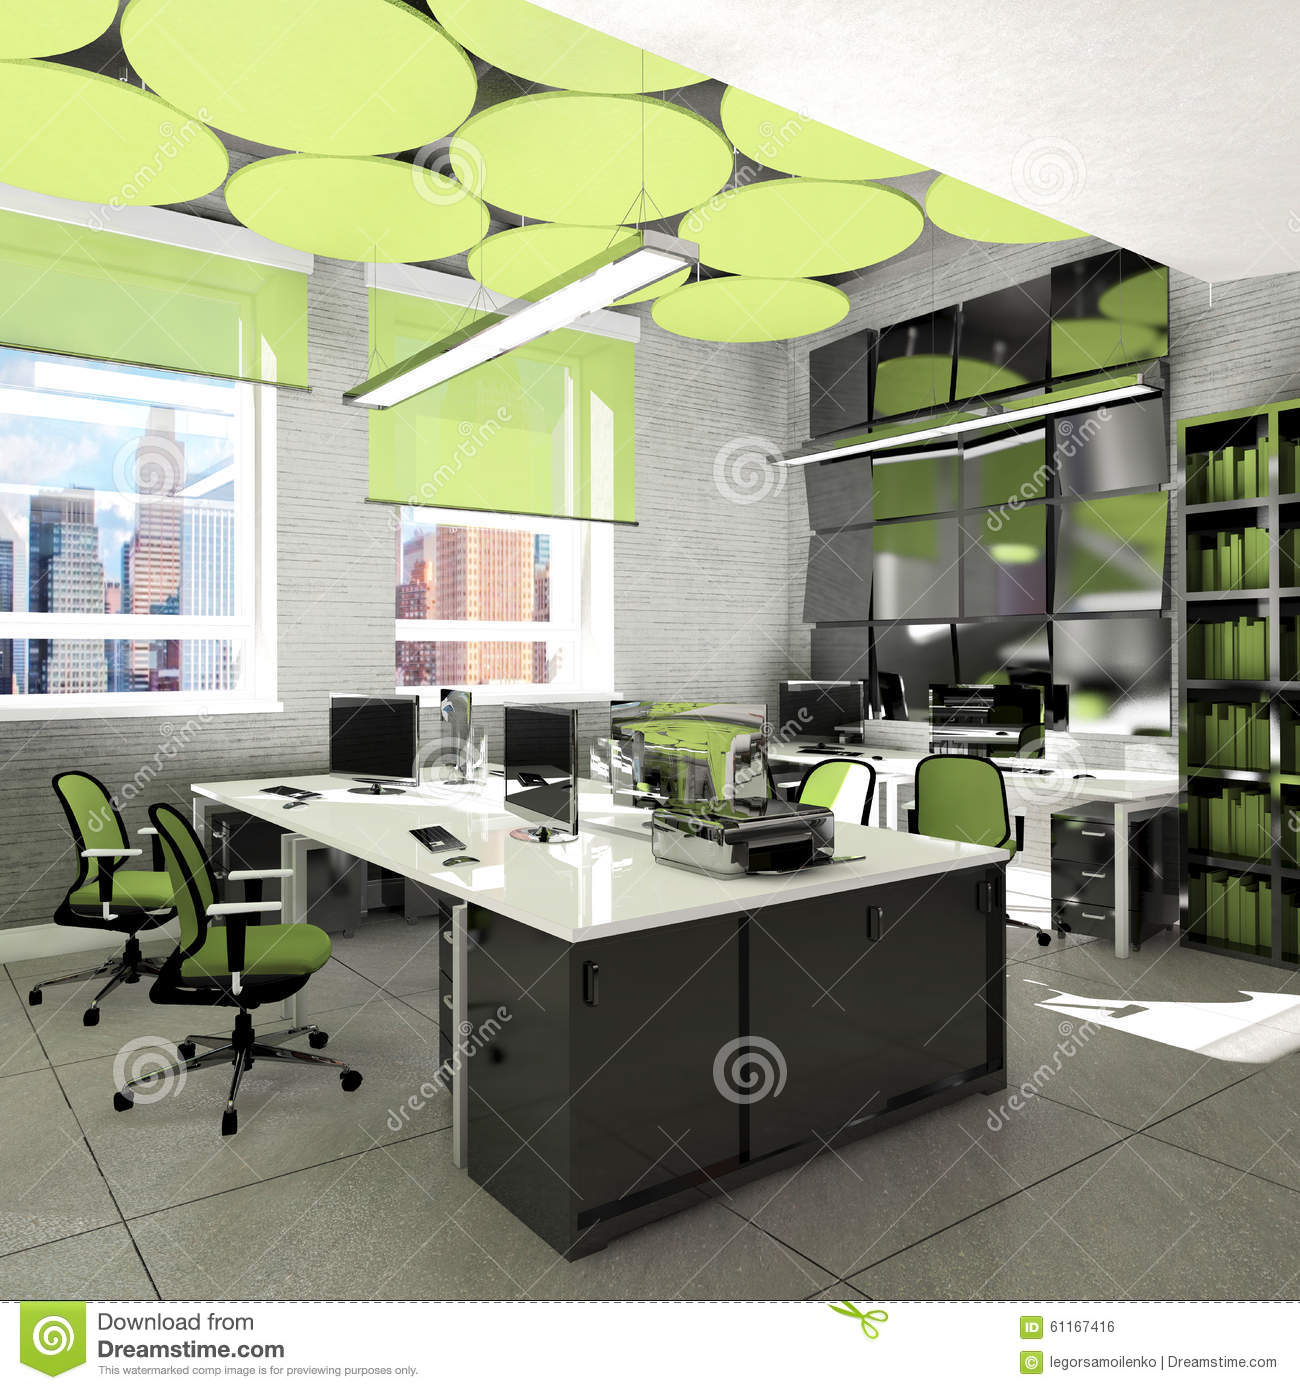 Empty office work place visualization stock illustration for Office interior work